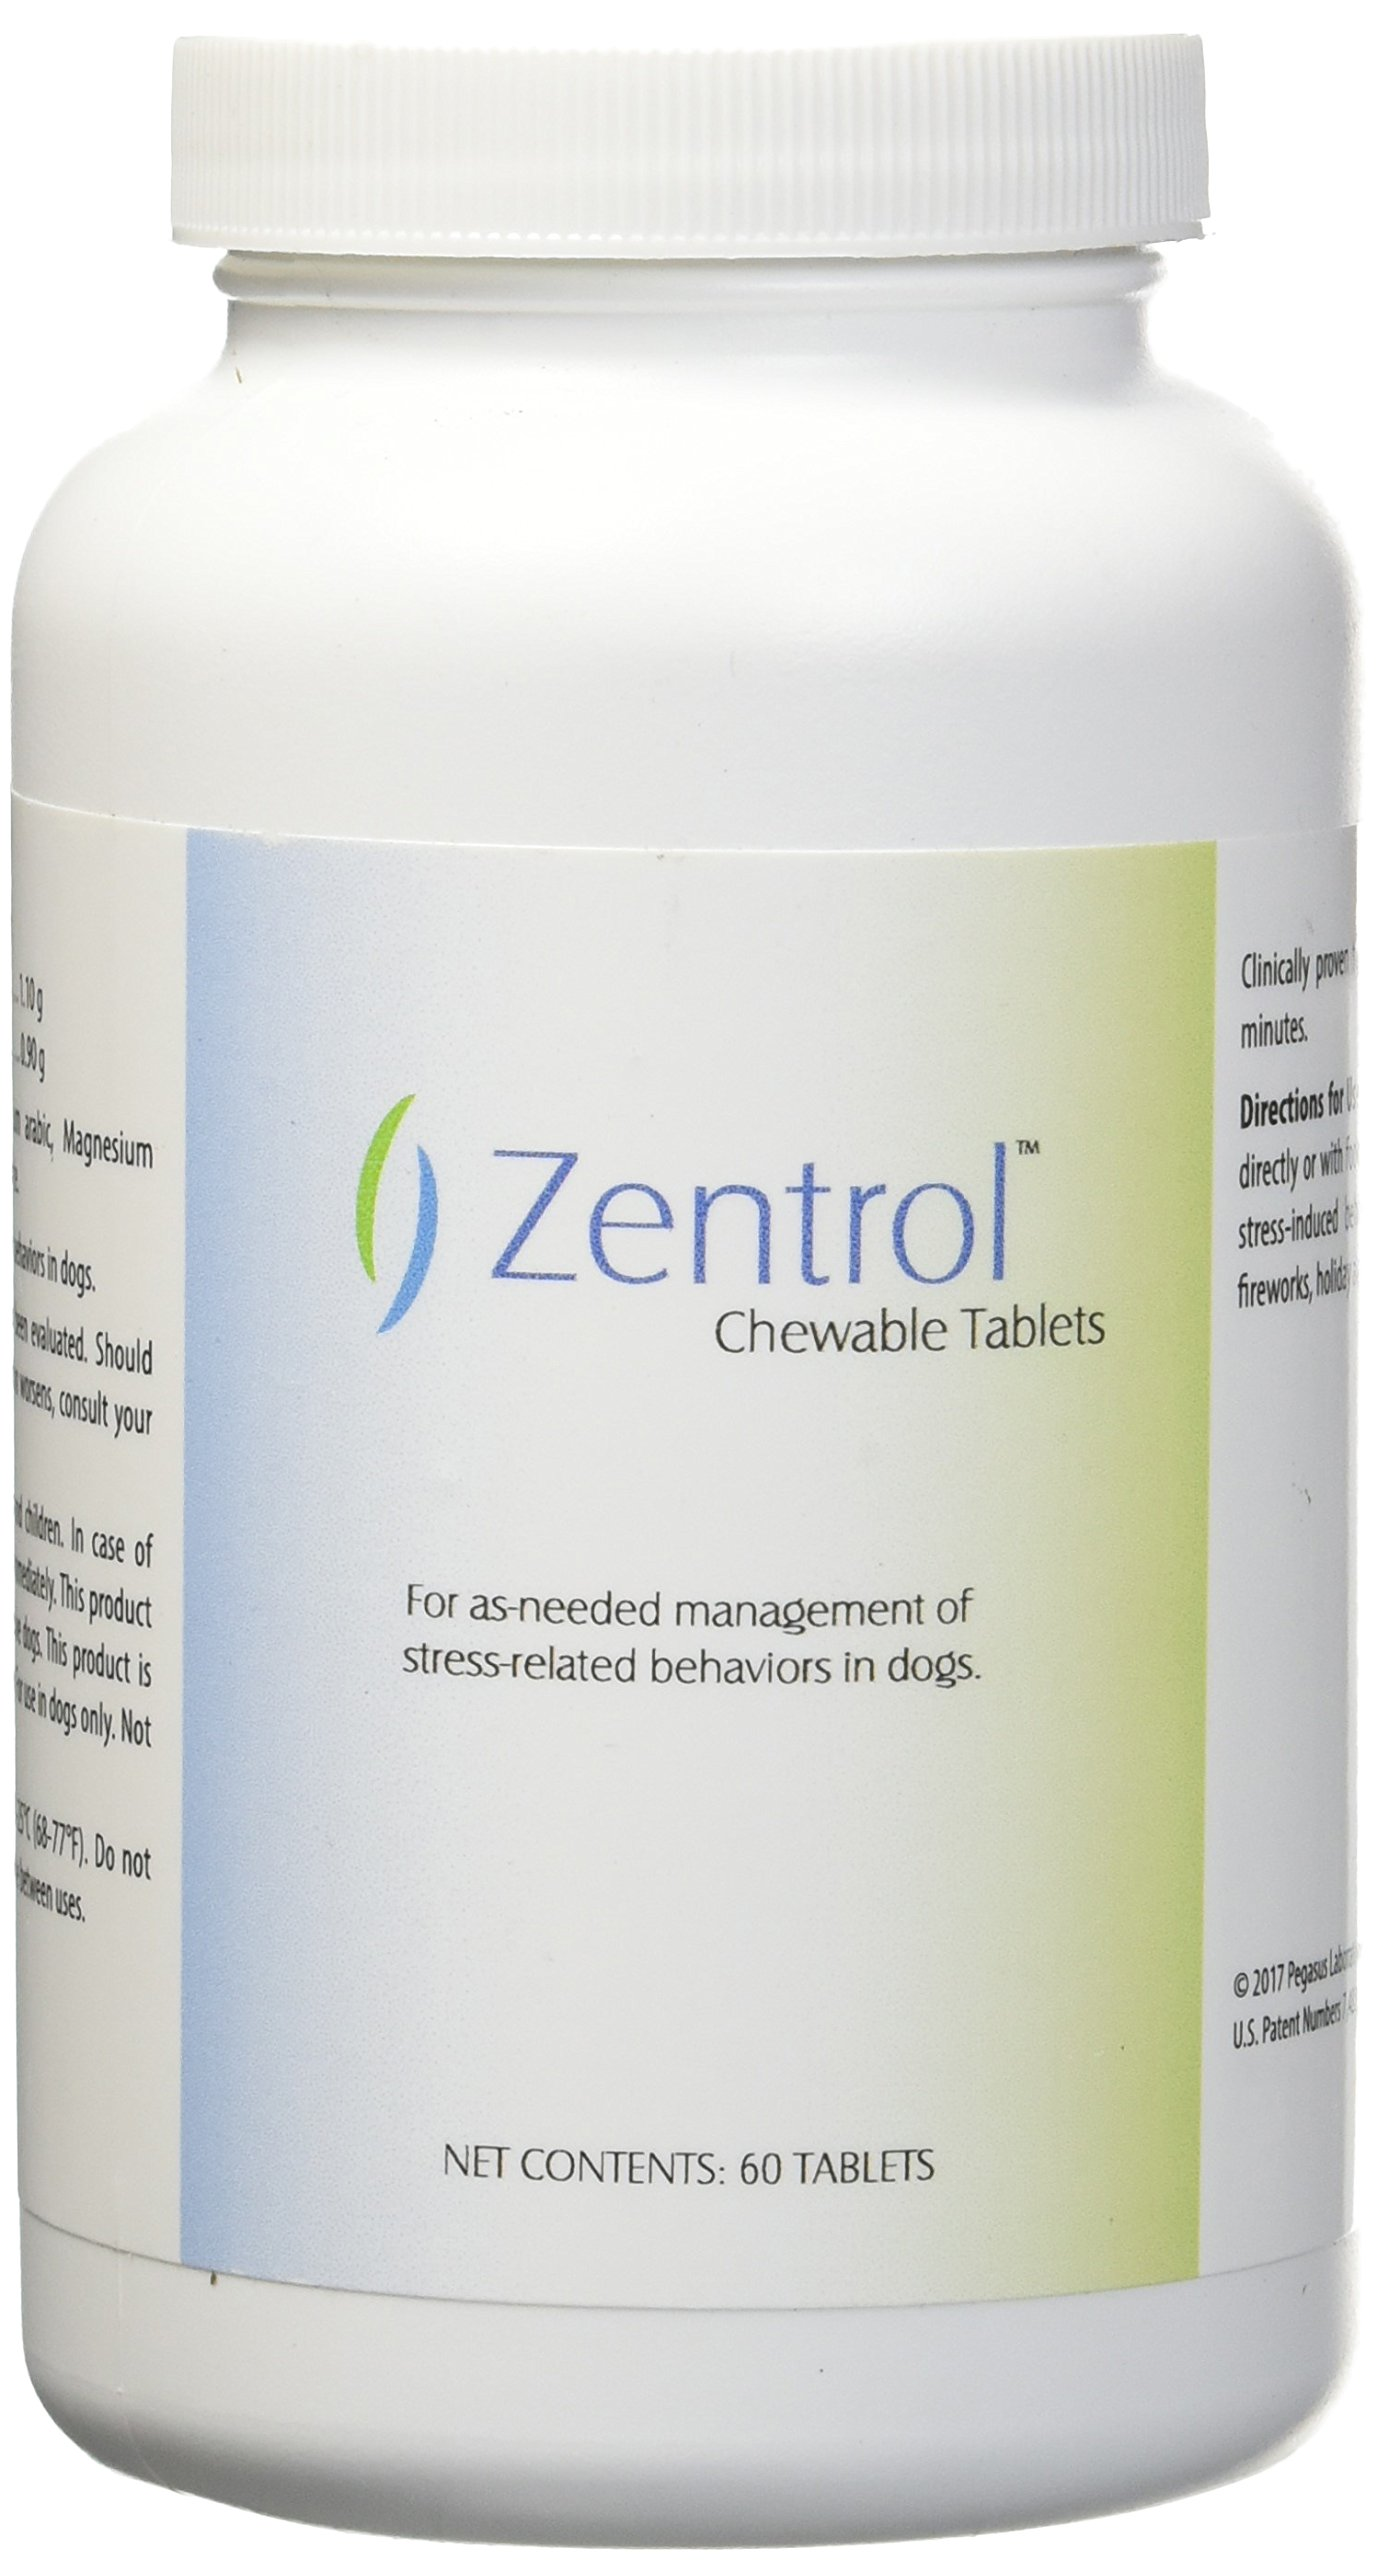 Zentrol Chewable Tablets 60 Chewable Tablets by Harmonease